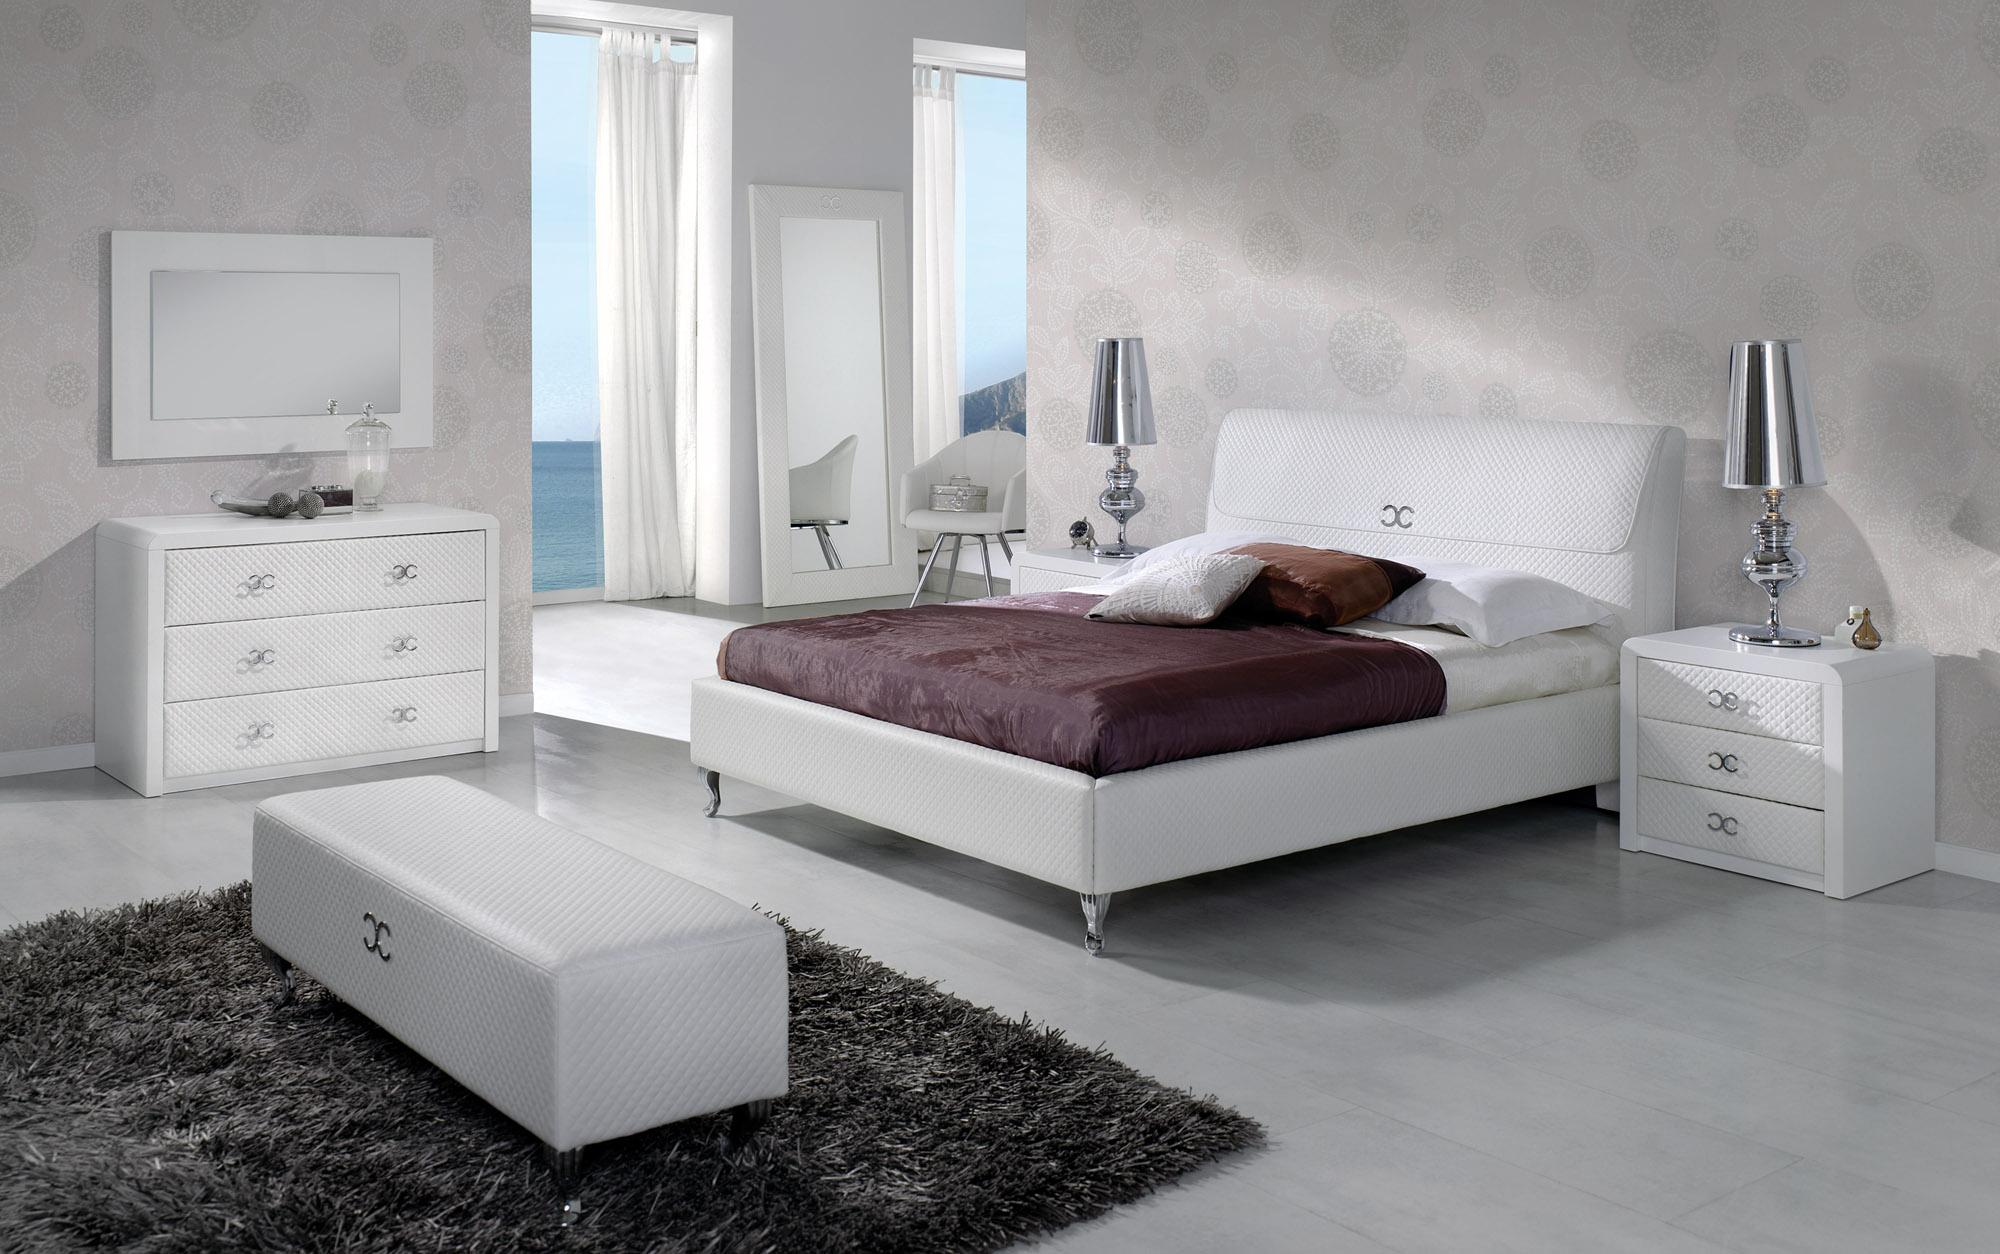 emily bedroom set. Bedroom Sets Collection  Master Furniture Made in Spain Leather Contemporary High End with Float